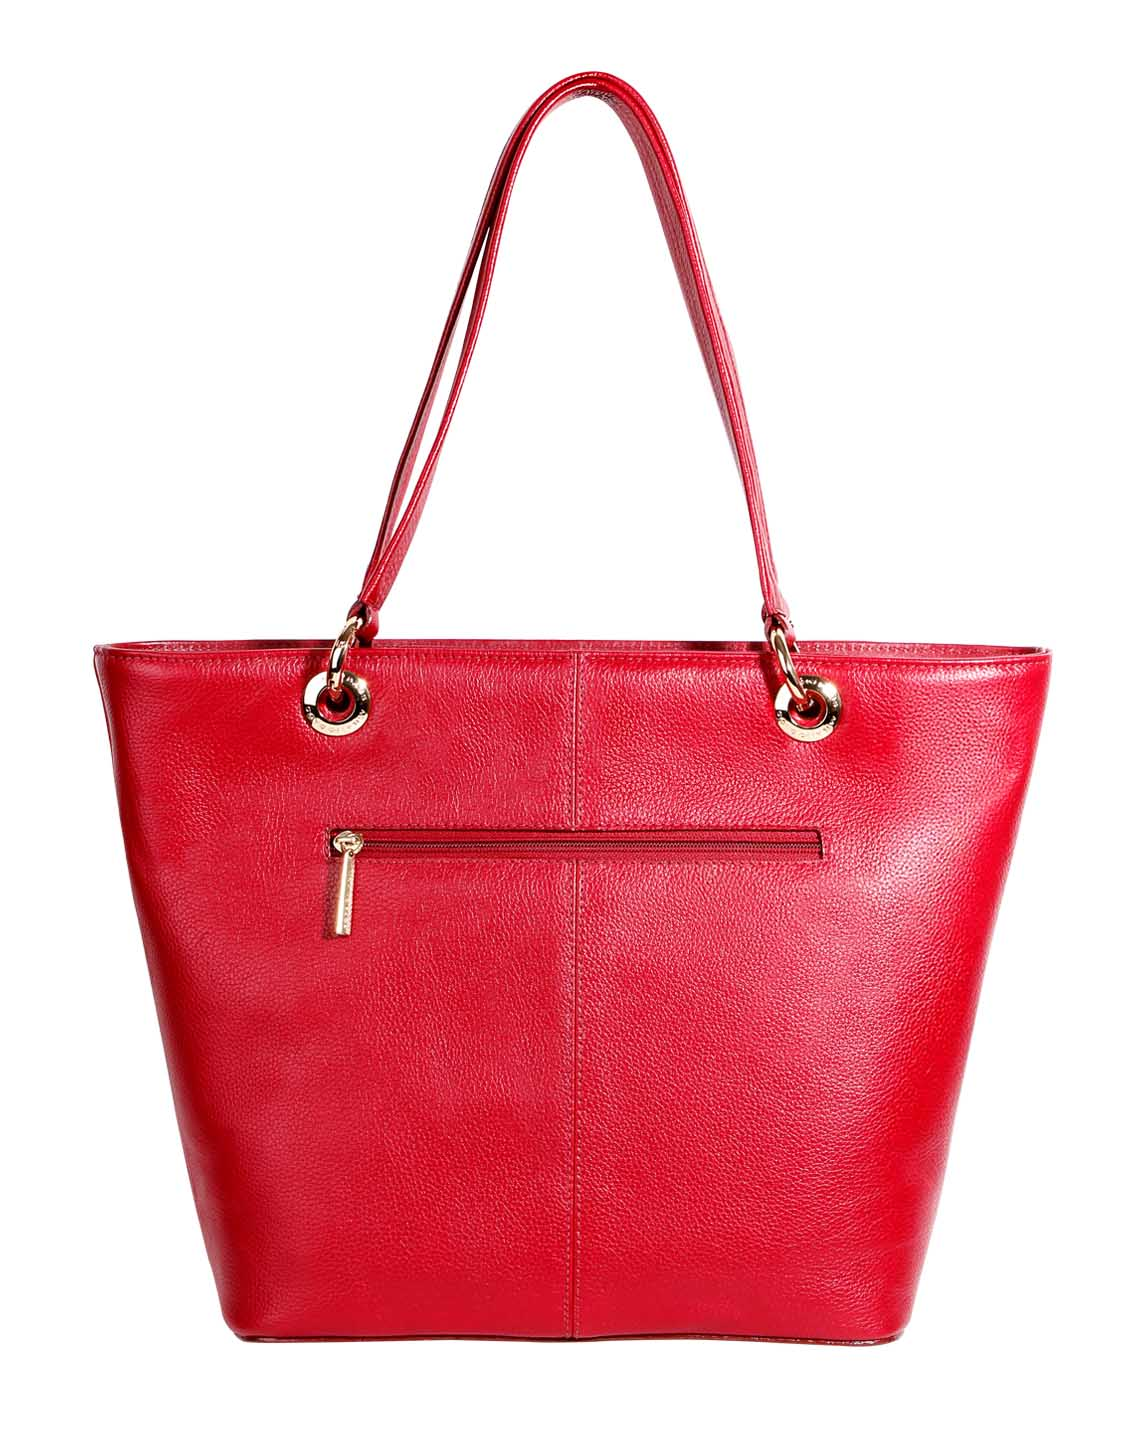 Cartera Tote Bag DS-2530 Color Rojo